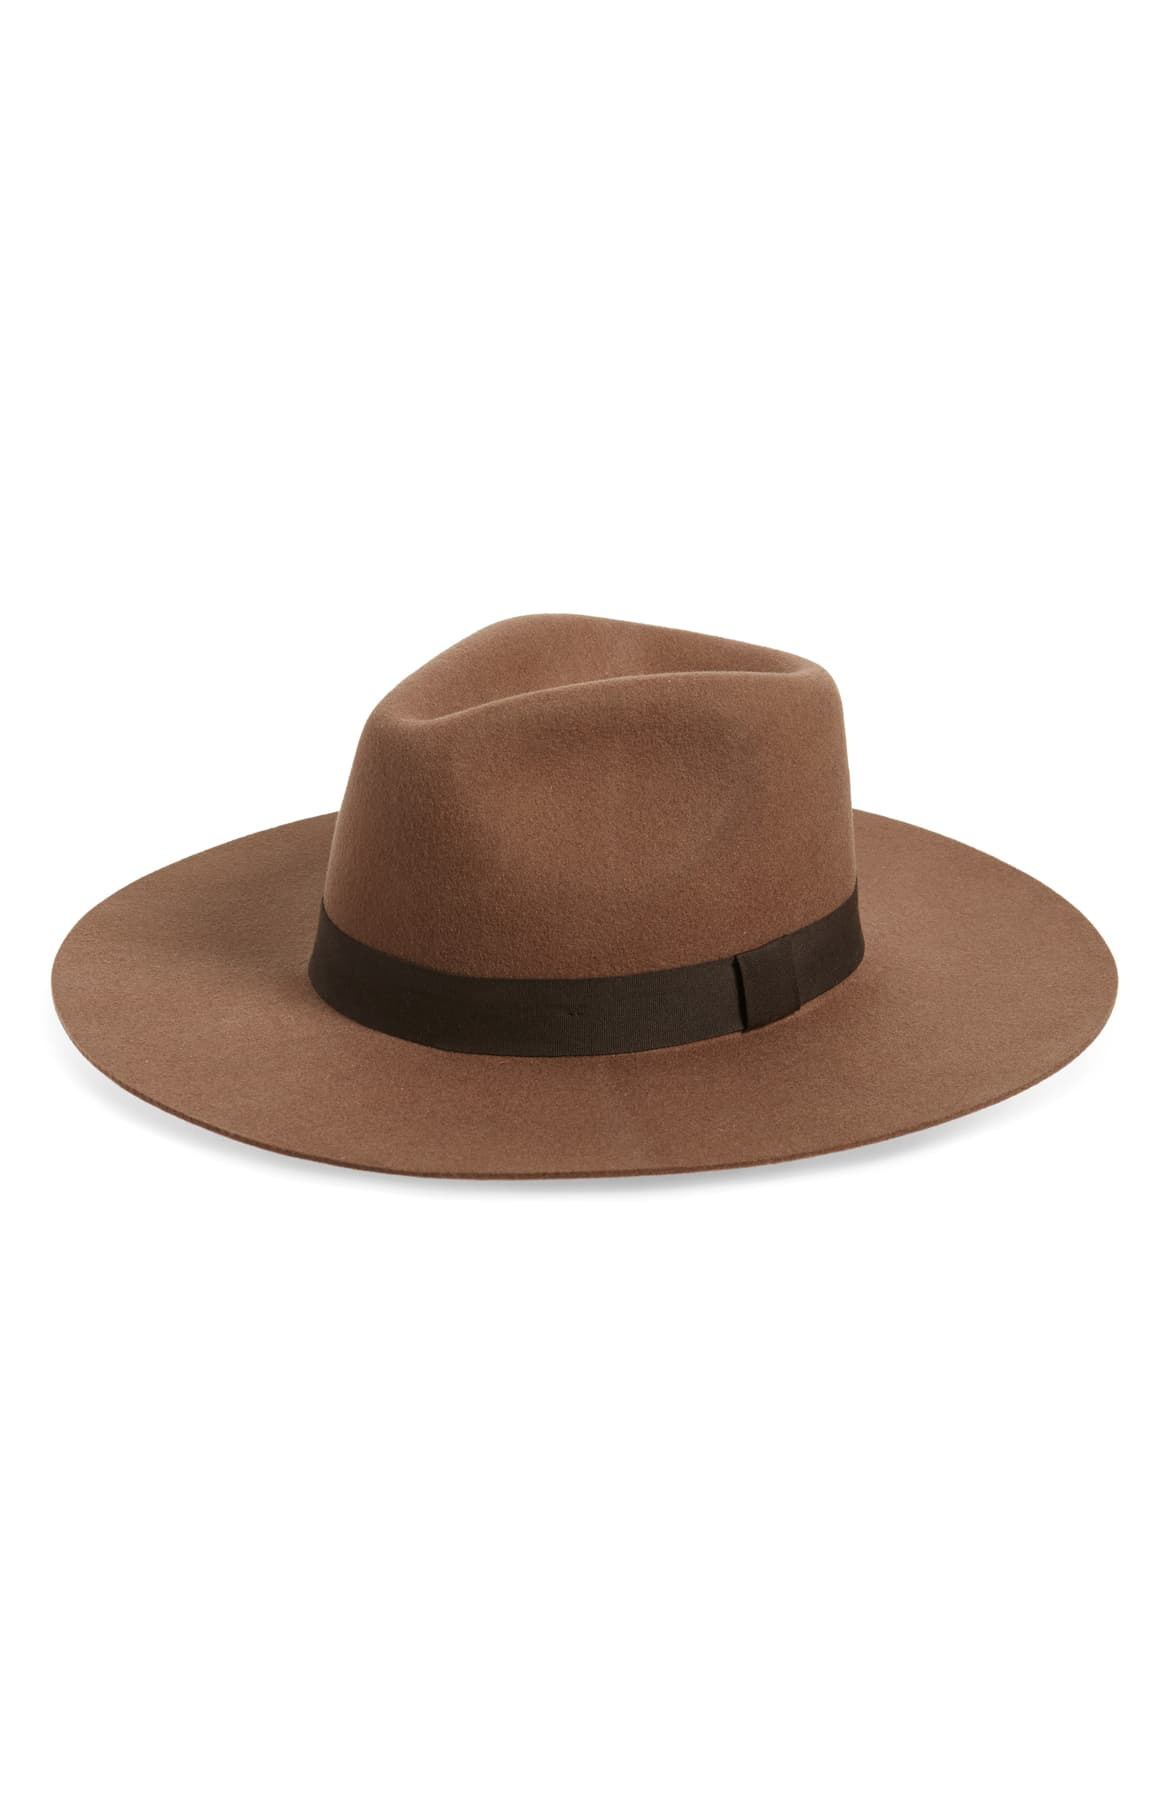 "<p>Eric Lynes, the man currently at the helm of this almost-century-old Canadian haberdashery, might be the world's foremost authority on gentlemen's hats. Check out the Madewell hat for $65.{&nbsp;}<a  href=""https://shop.nordstrom.com/s/madewell-x-biltmore-montana-wool-felt-hat/5386158/full?origin=keywordsearch-personalizedsort&breadcrumb=Home%2FAll%20Results&color=faded%20birch%20multi"" target=""_blank"" title=""https://shop.nordstrom.com/s/madewell-x-biltmore-montana-wool-felt-hat/5386158/full?origin=keywordsearch-personalizedsort&breadcrumb=Home%2FAll%20Results&color=faded%20birch%20multi"">Shop it</a>{&nbsp;}(Image: Nordstrom){&nbsp;}</p>"